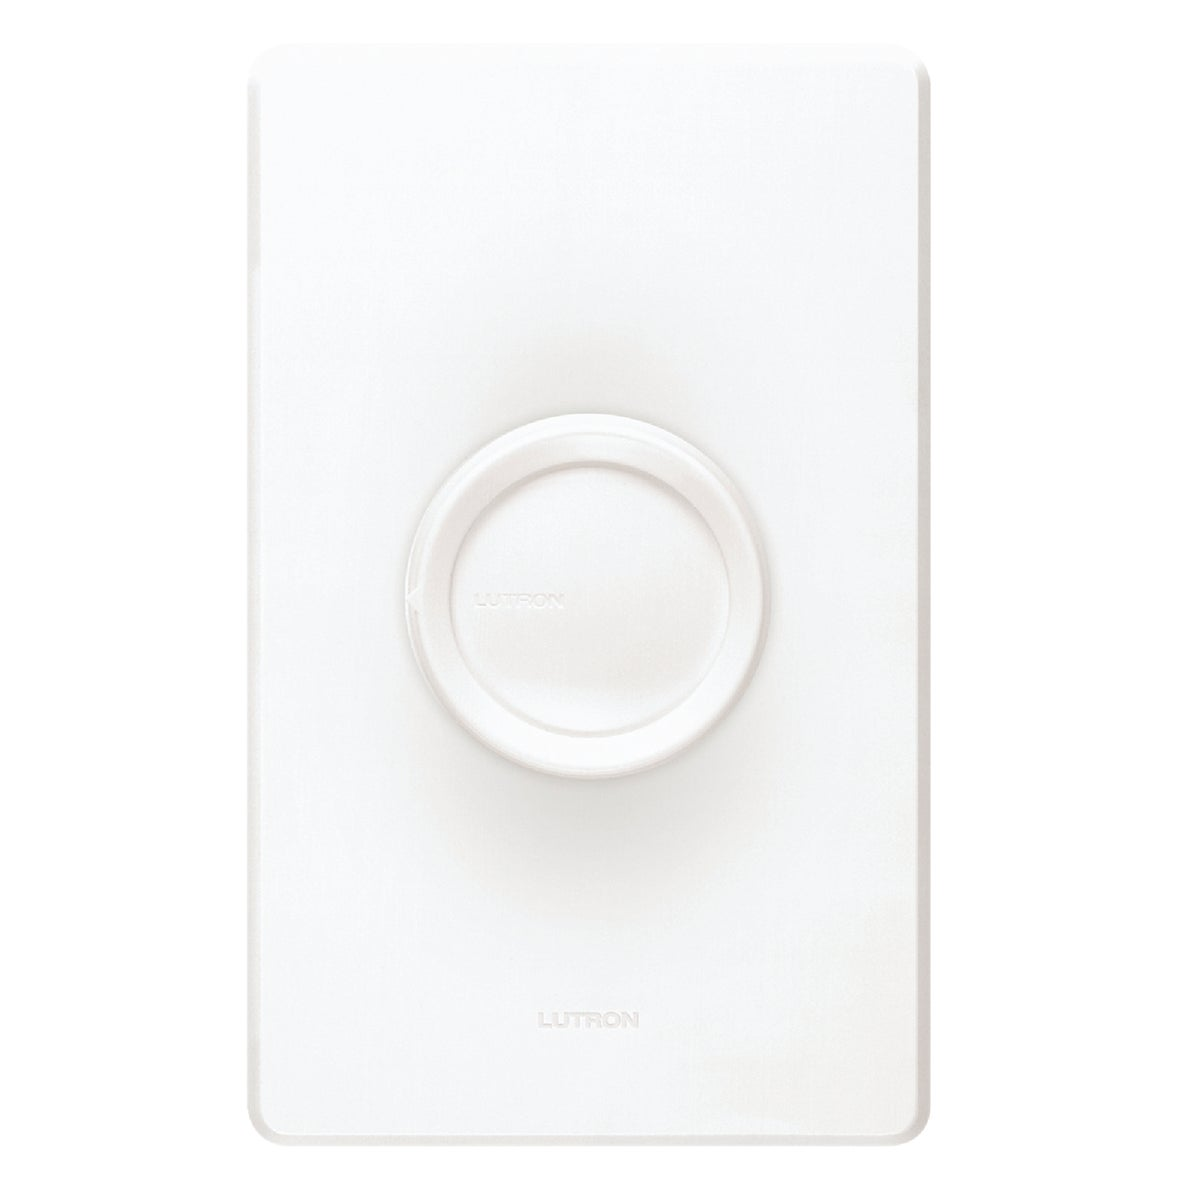 WHT/IV ROTARY DIMMER - D-600PH-DK by Lutron Elect Co Inc